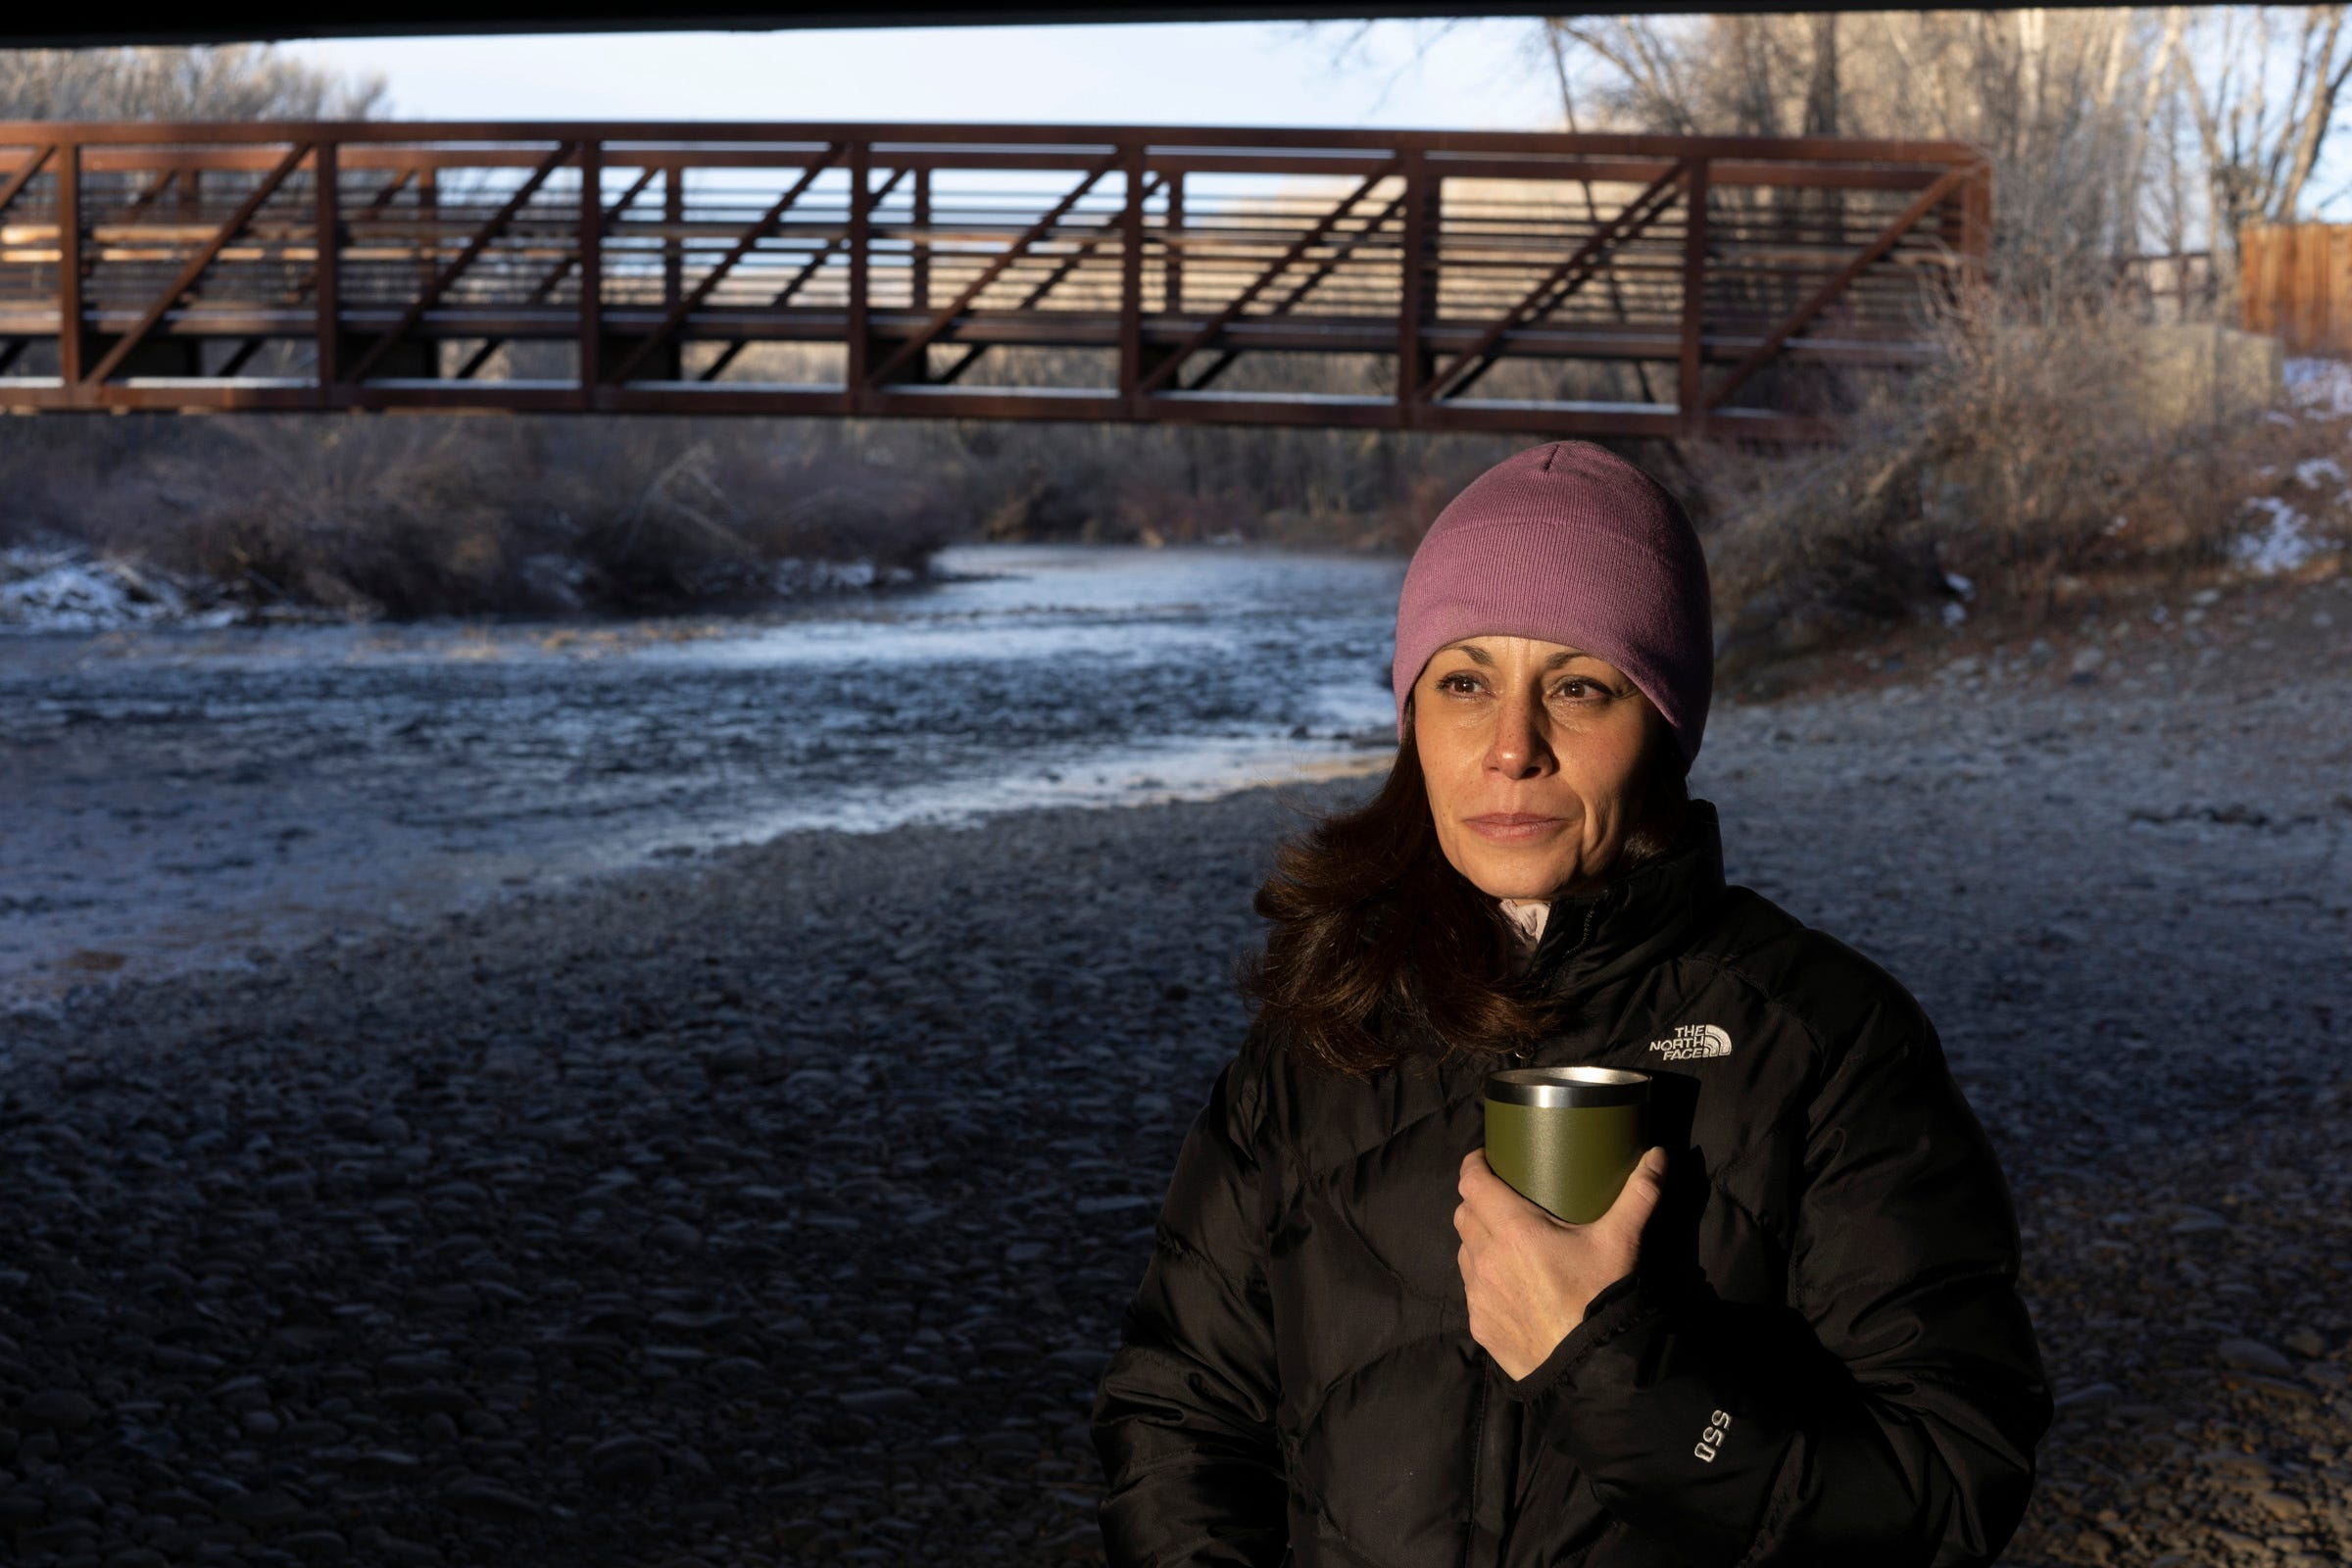 Sonja Chavez, general manager of the Upper Gunnison River Water Conservancy District, stands on the banks of the Gunnison River, a tributary of the Colorado River. The river's flow has declined dramatically over the past year.